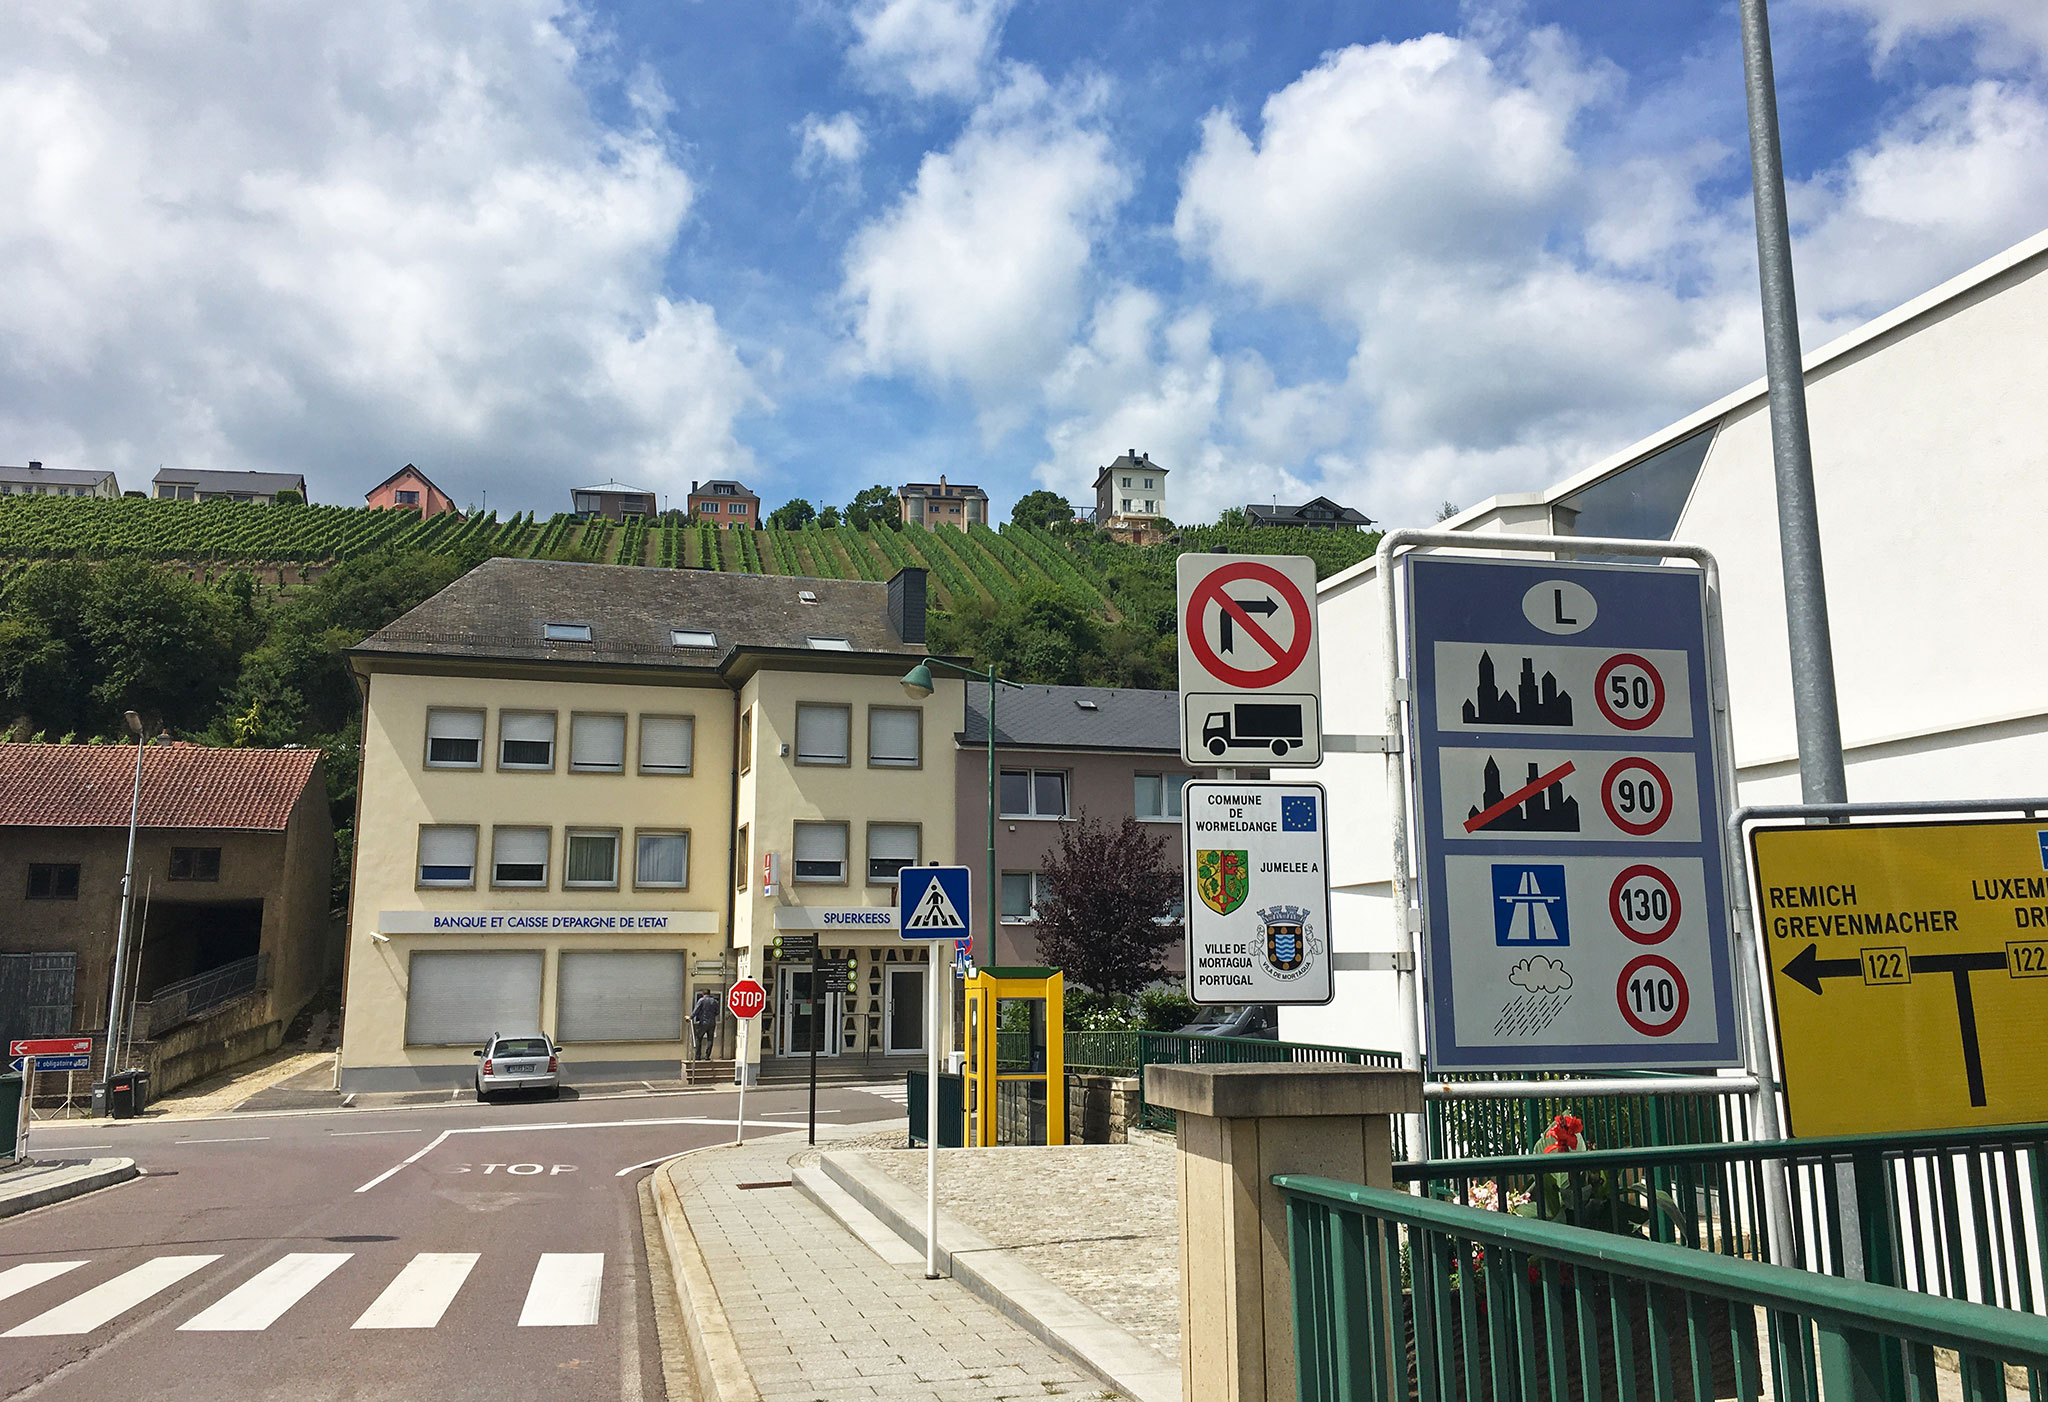 At the border, Luxembourg on the other side